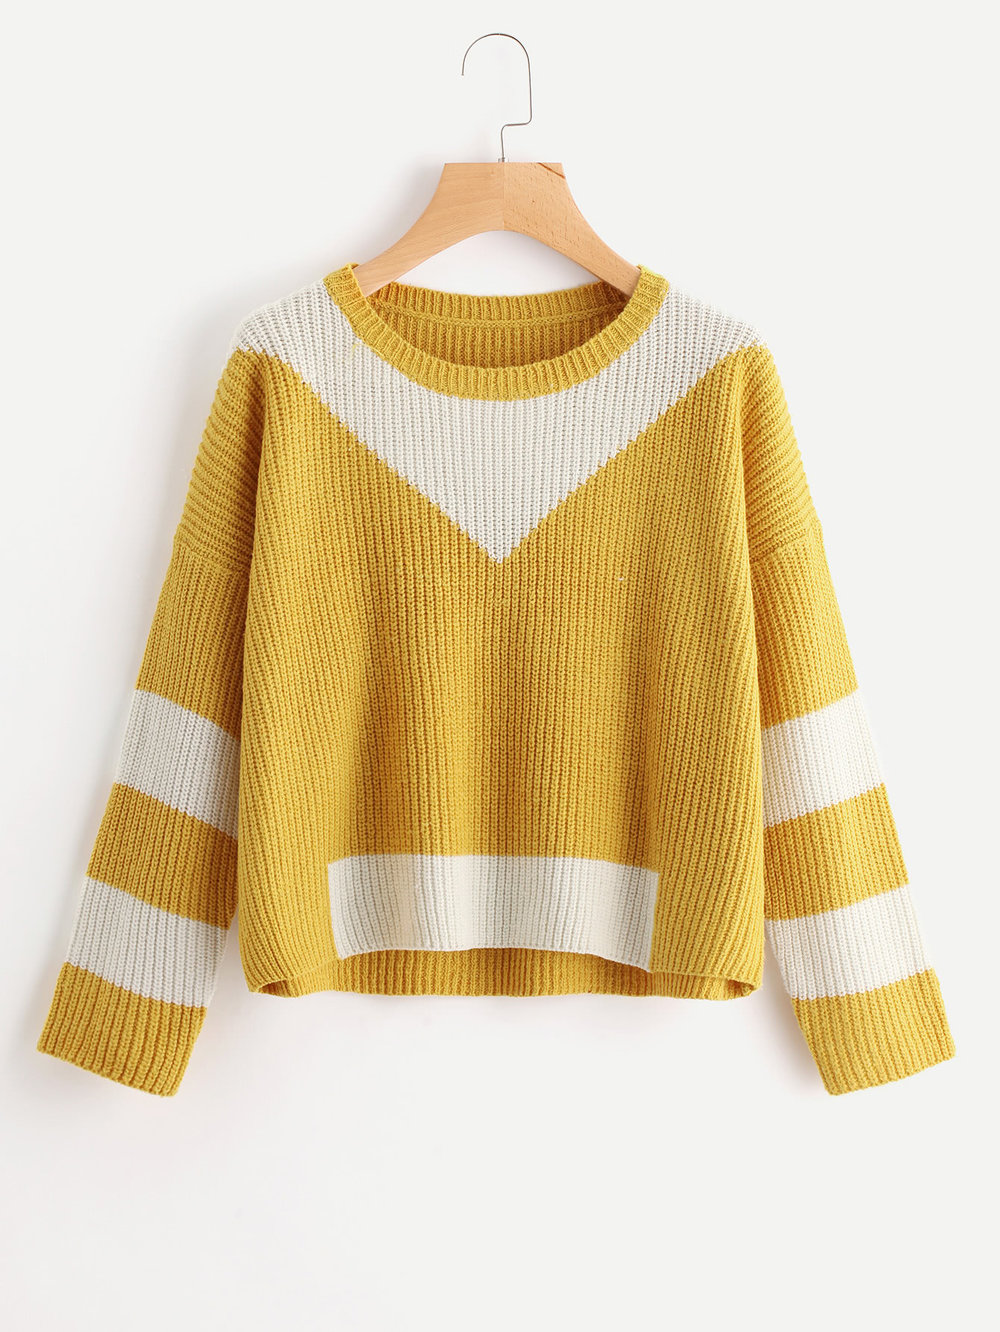 Drop Shoulder Contrast Panel Sweater - $17.99*The one I bought is currently sold out ($20.99)